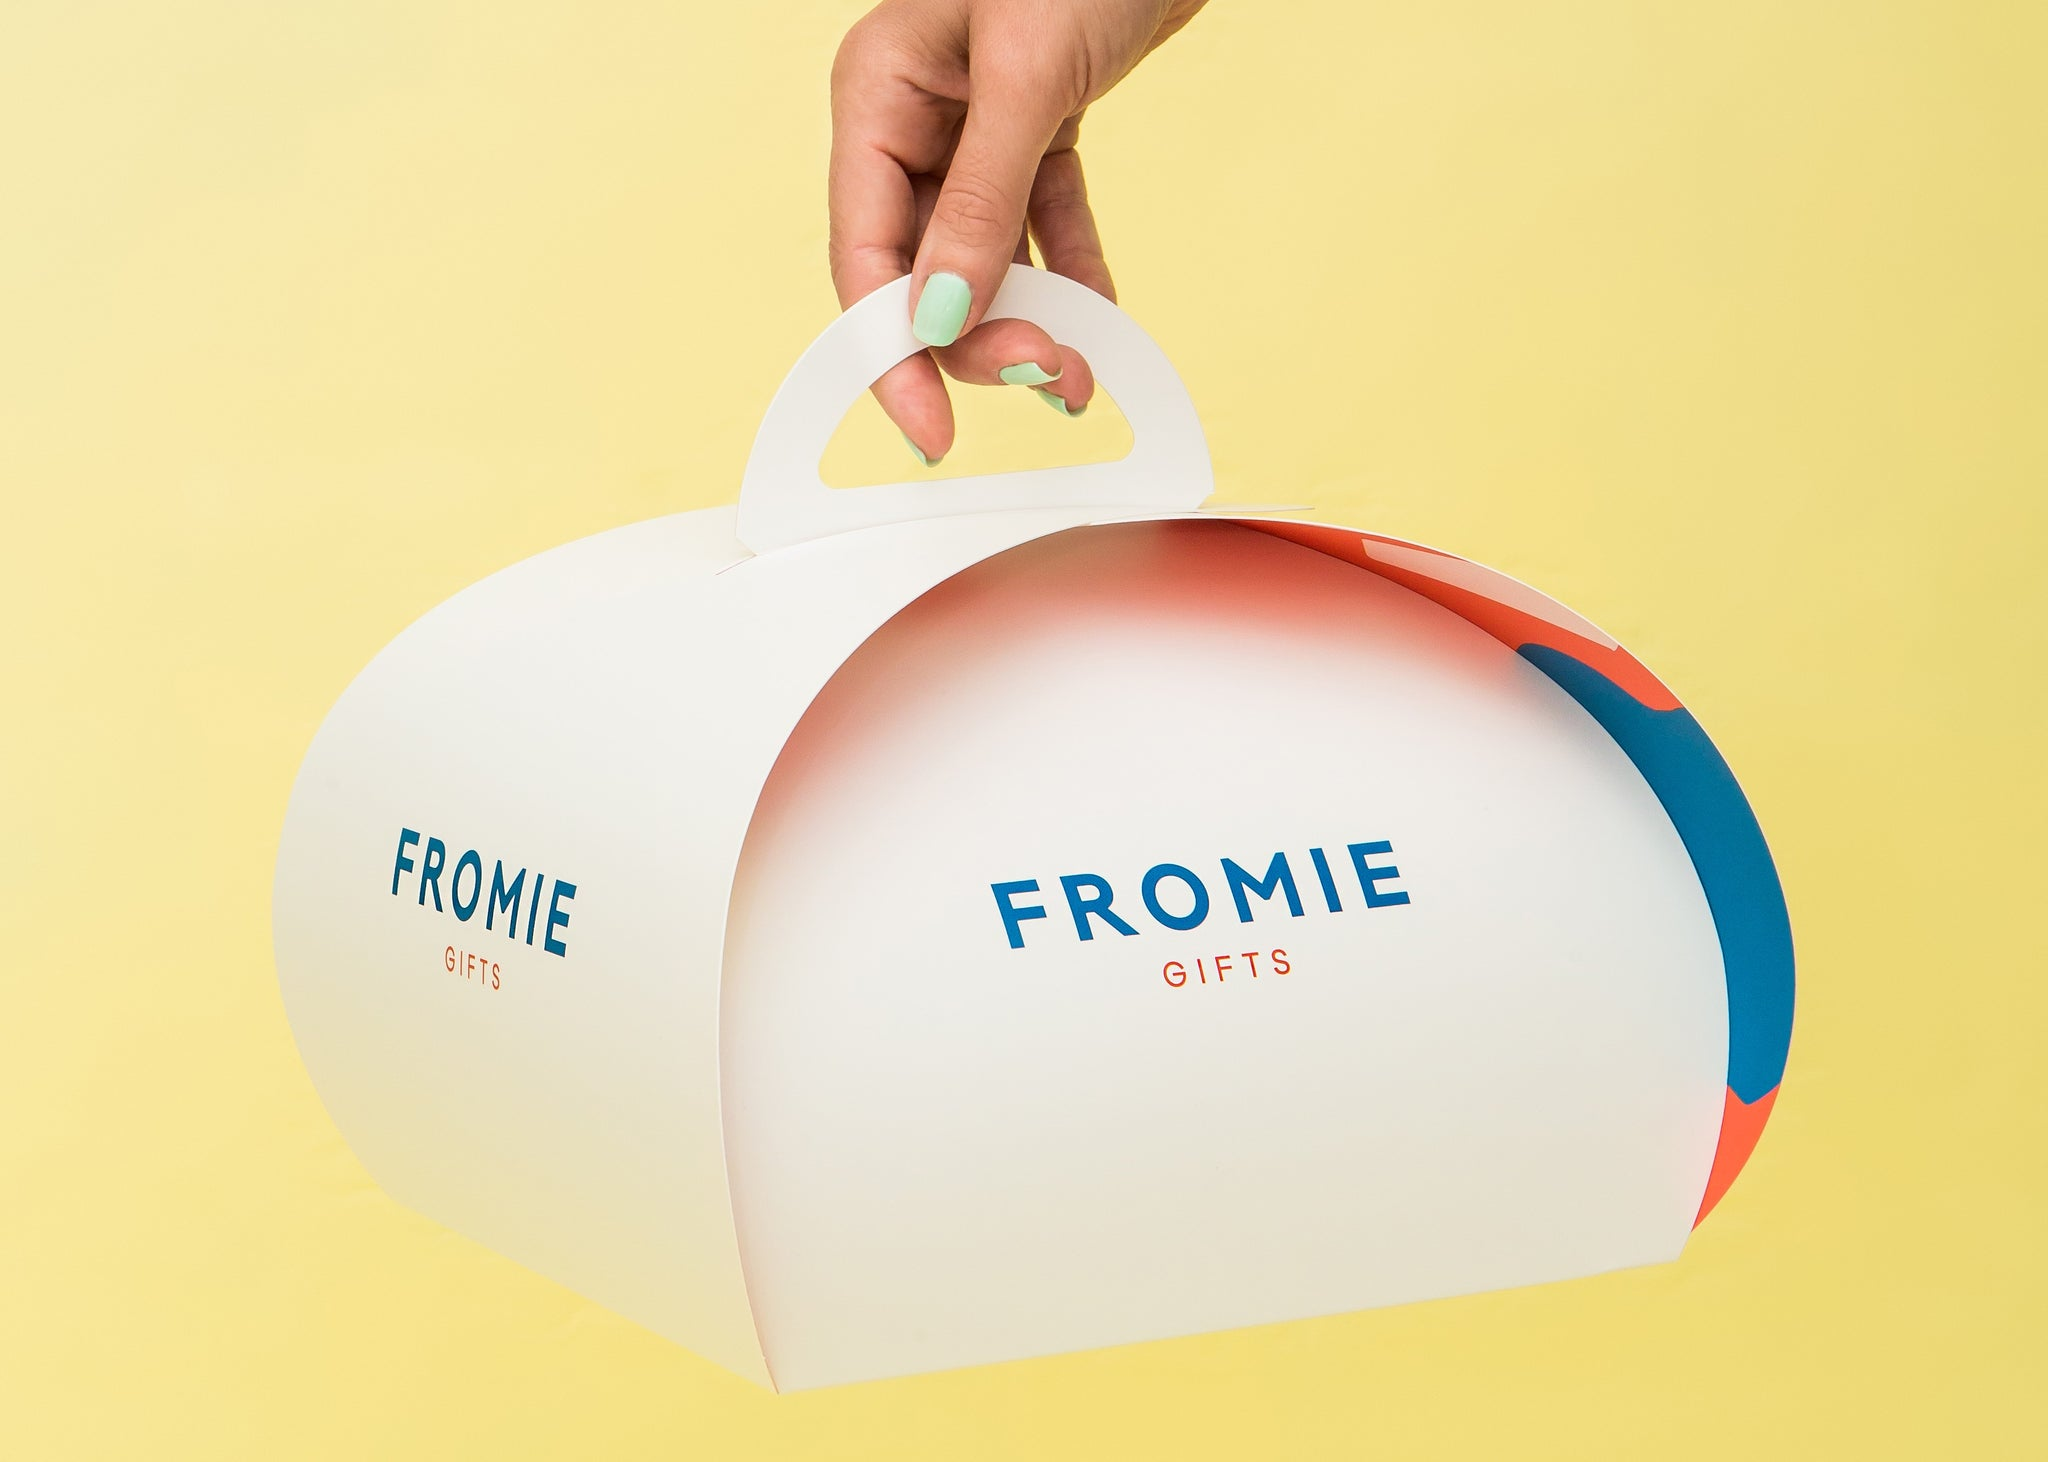 Fromie Gifts is Moving Online